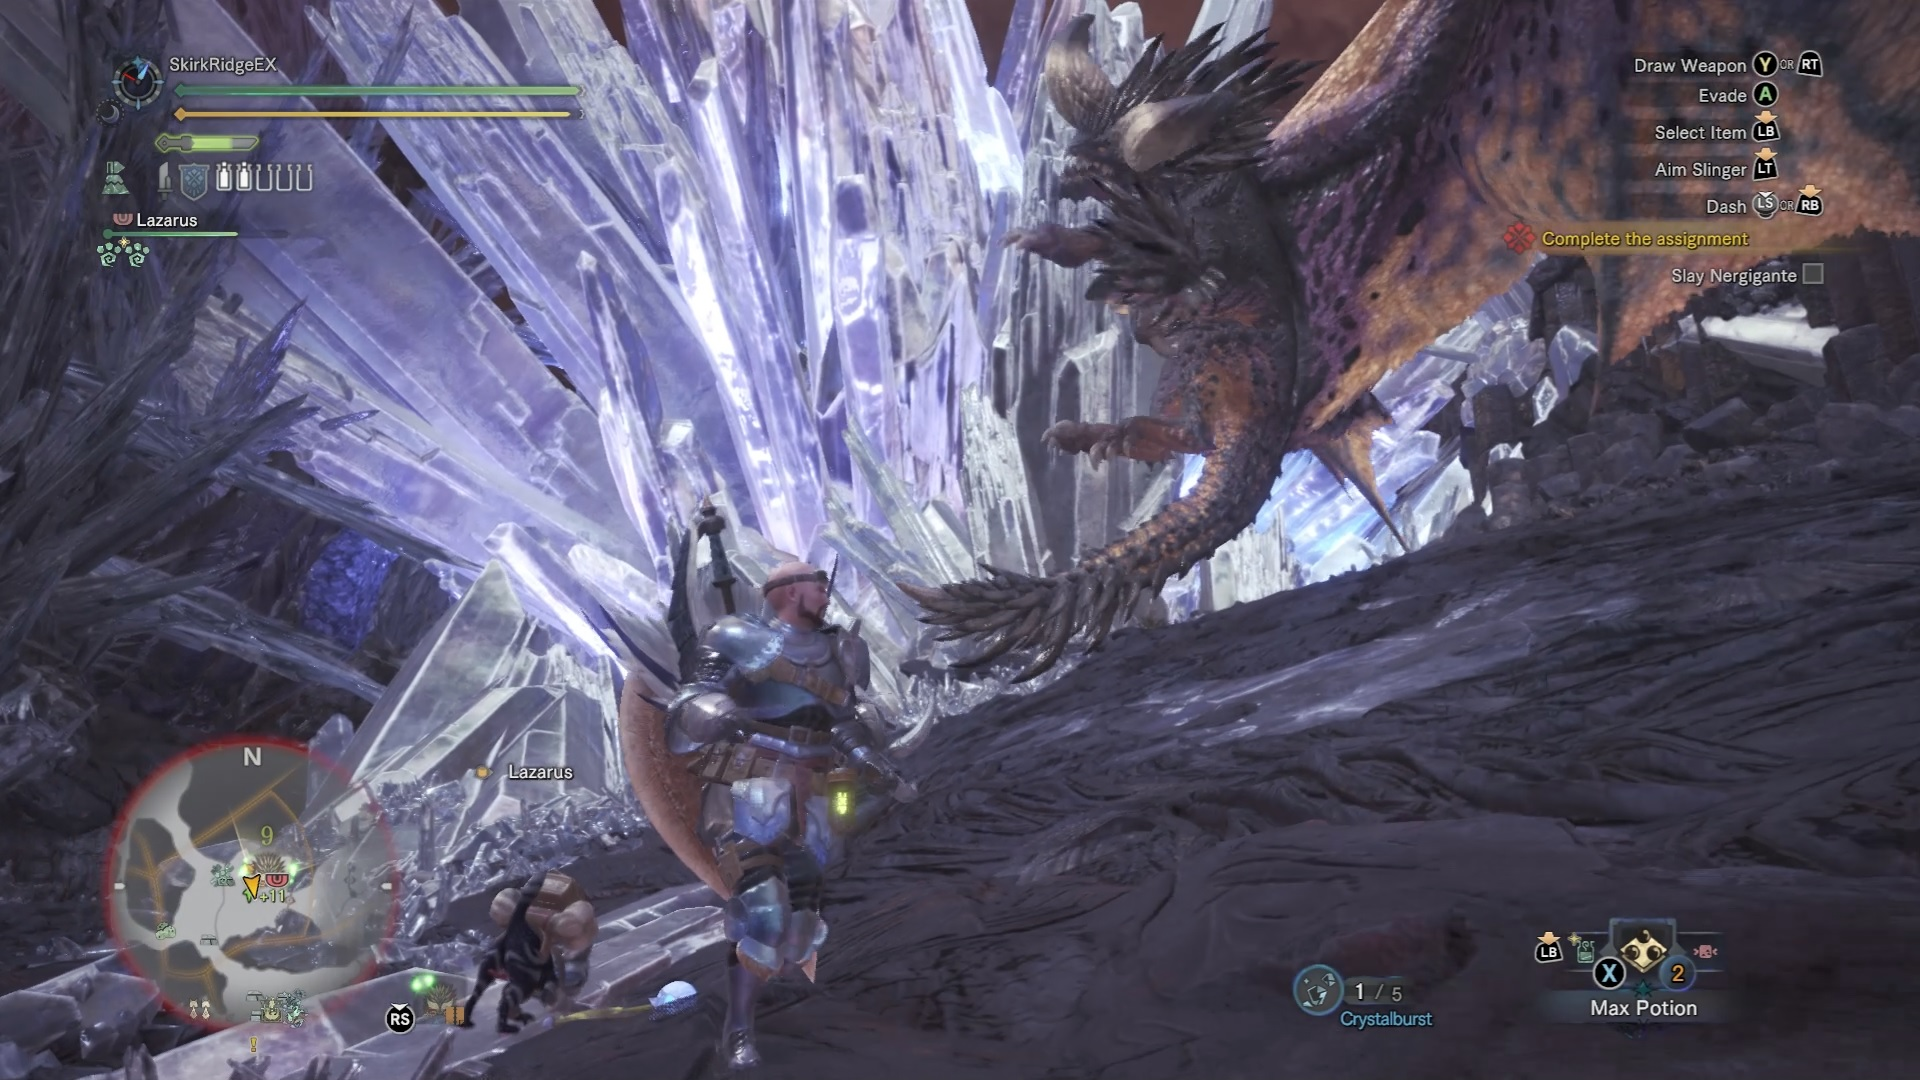 Nergigante in mid-flight, about to execute its dive bomb attack.